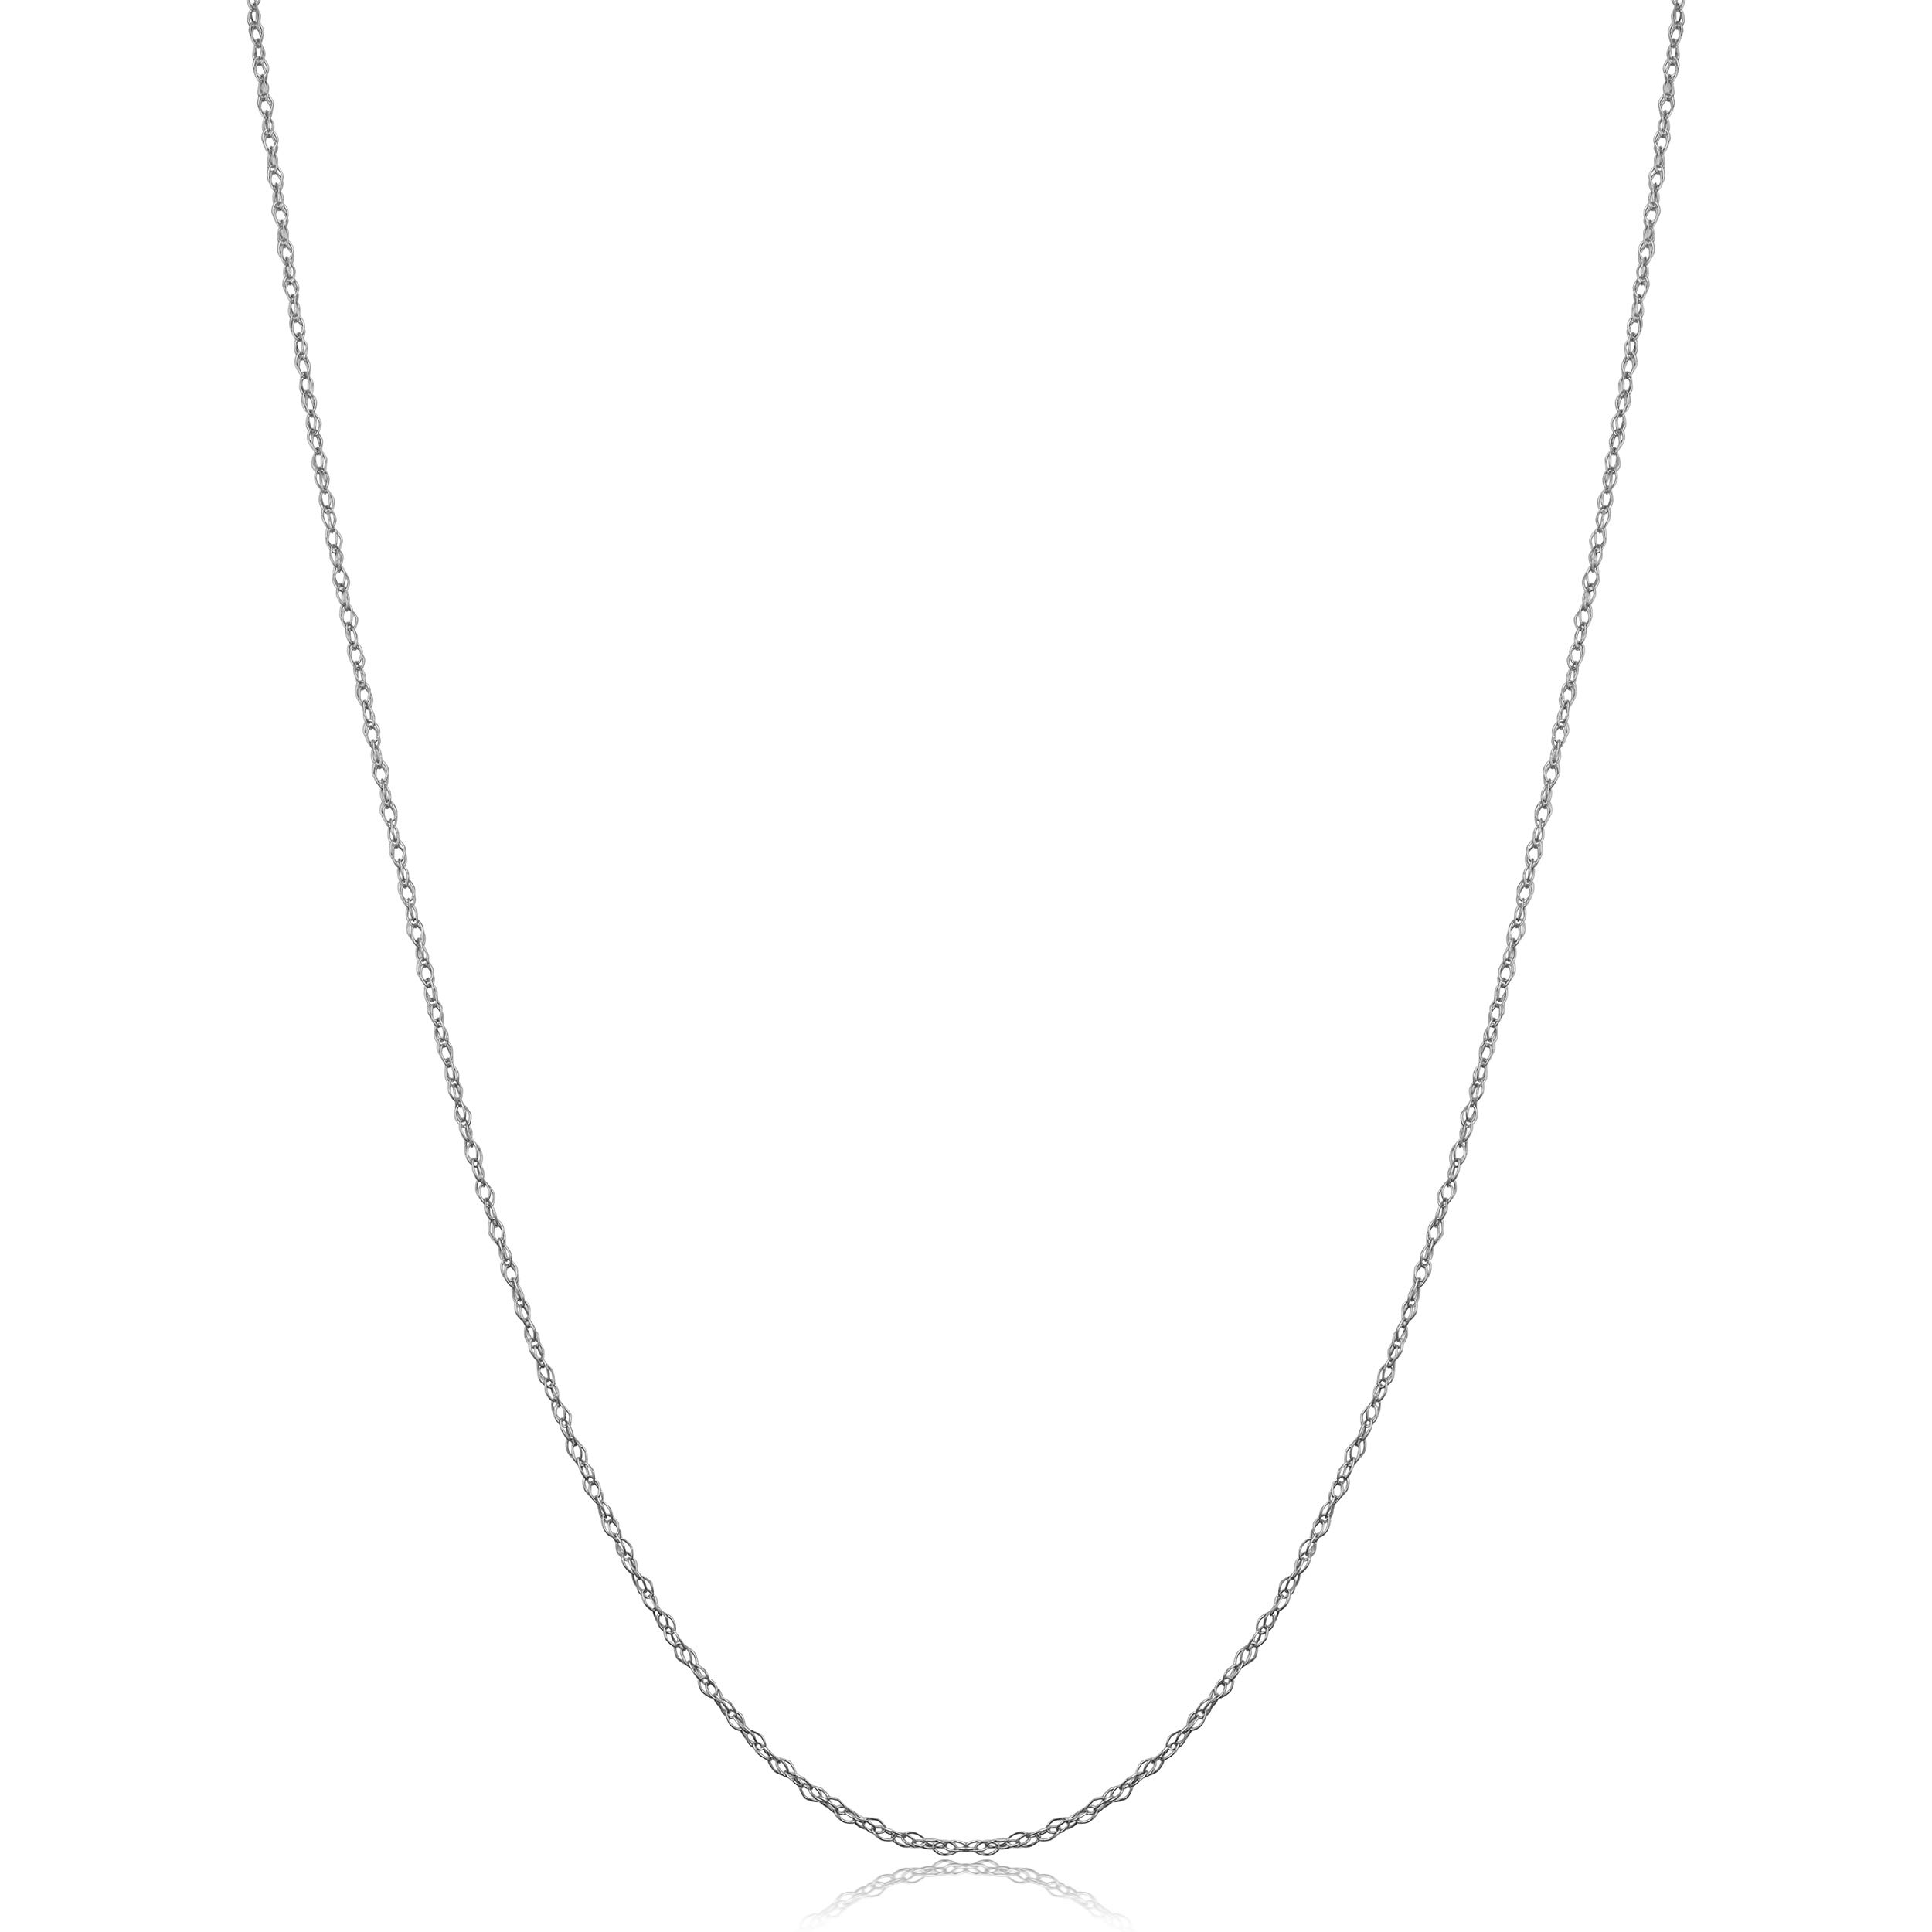 Kooljewelry Solid 14k White Gold Dainty Rope Chain Necklace (0.7 mm, 20 inch)